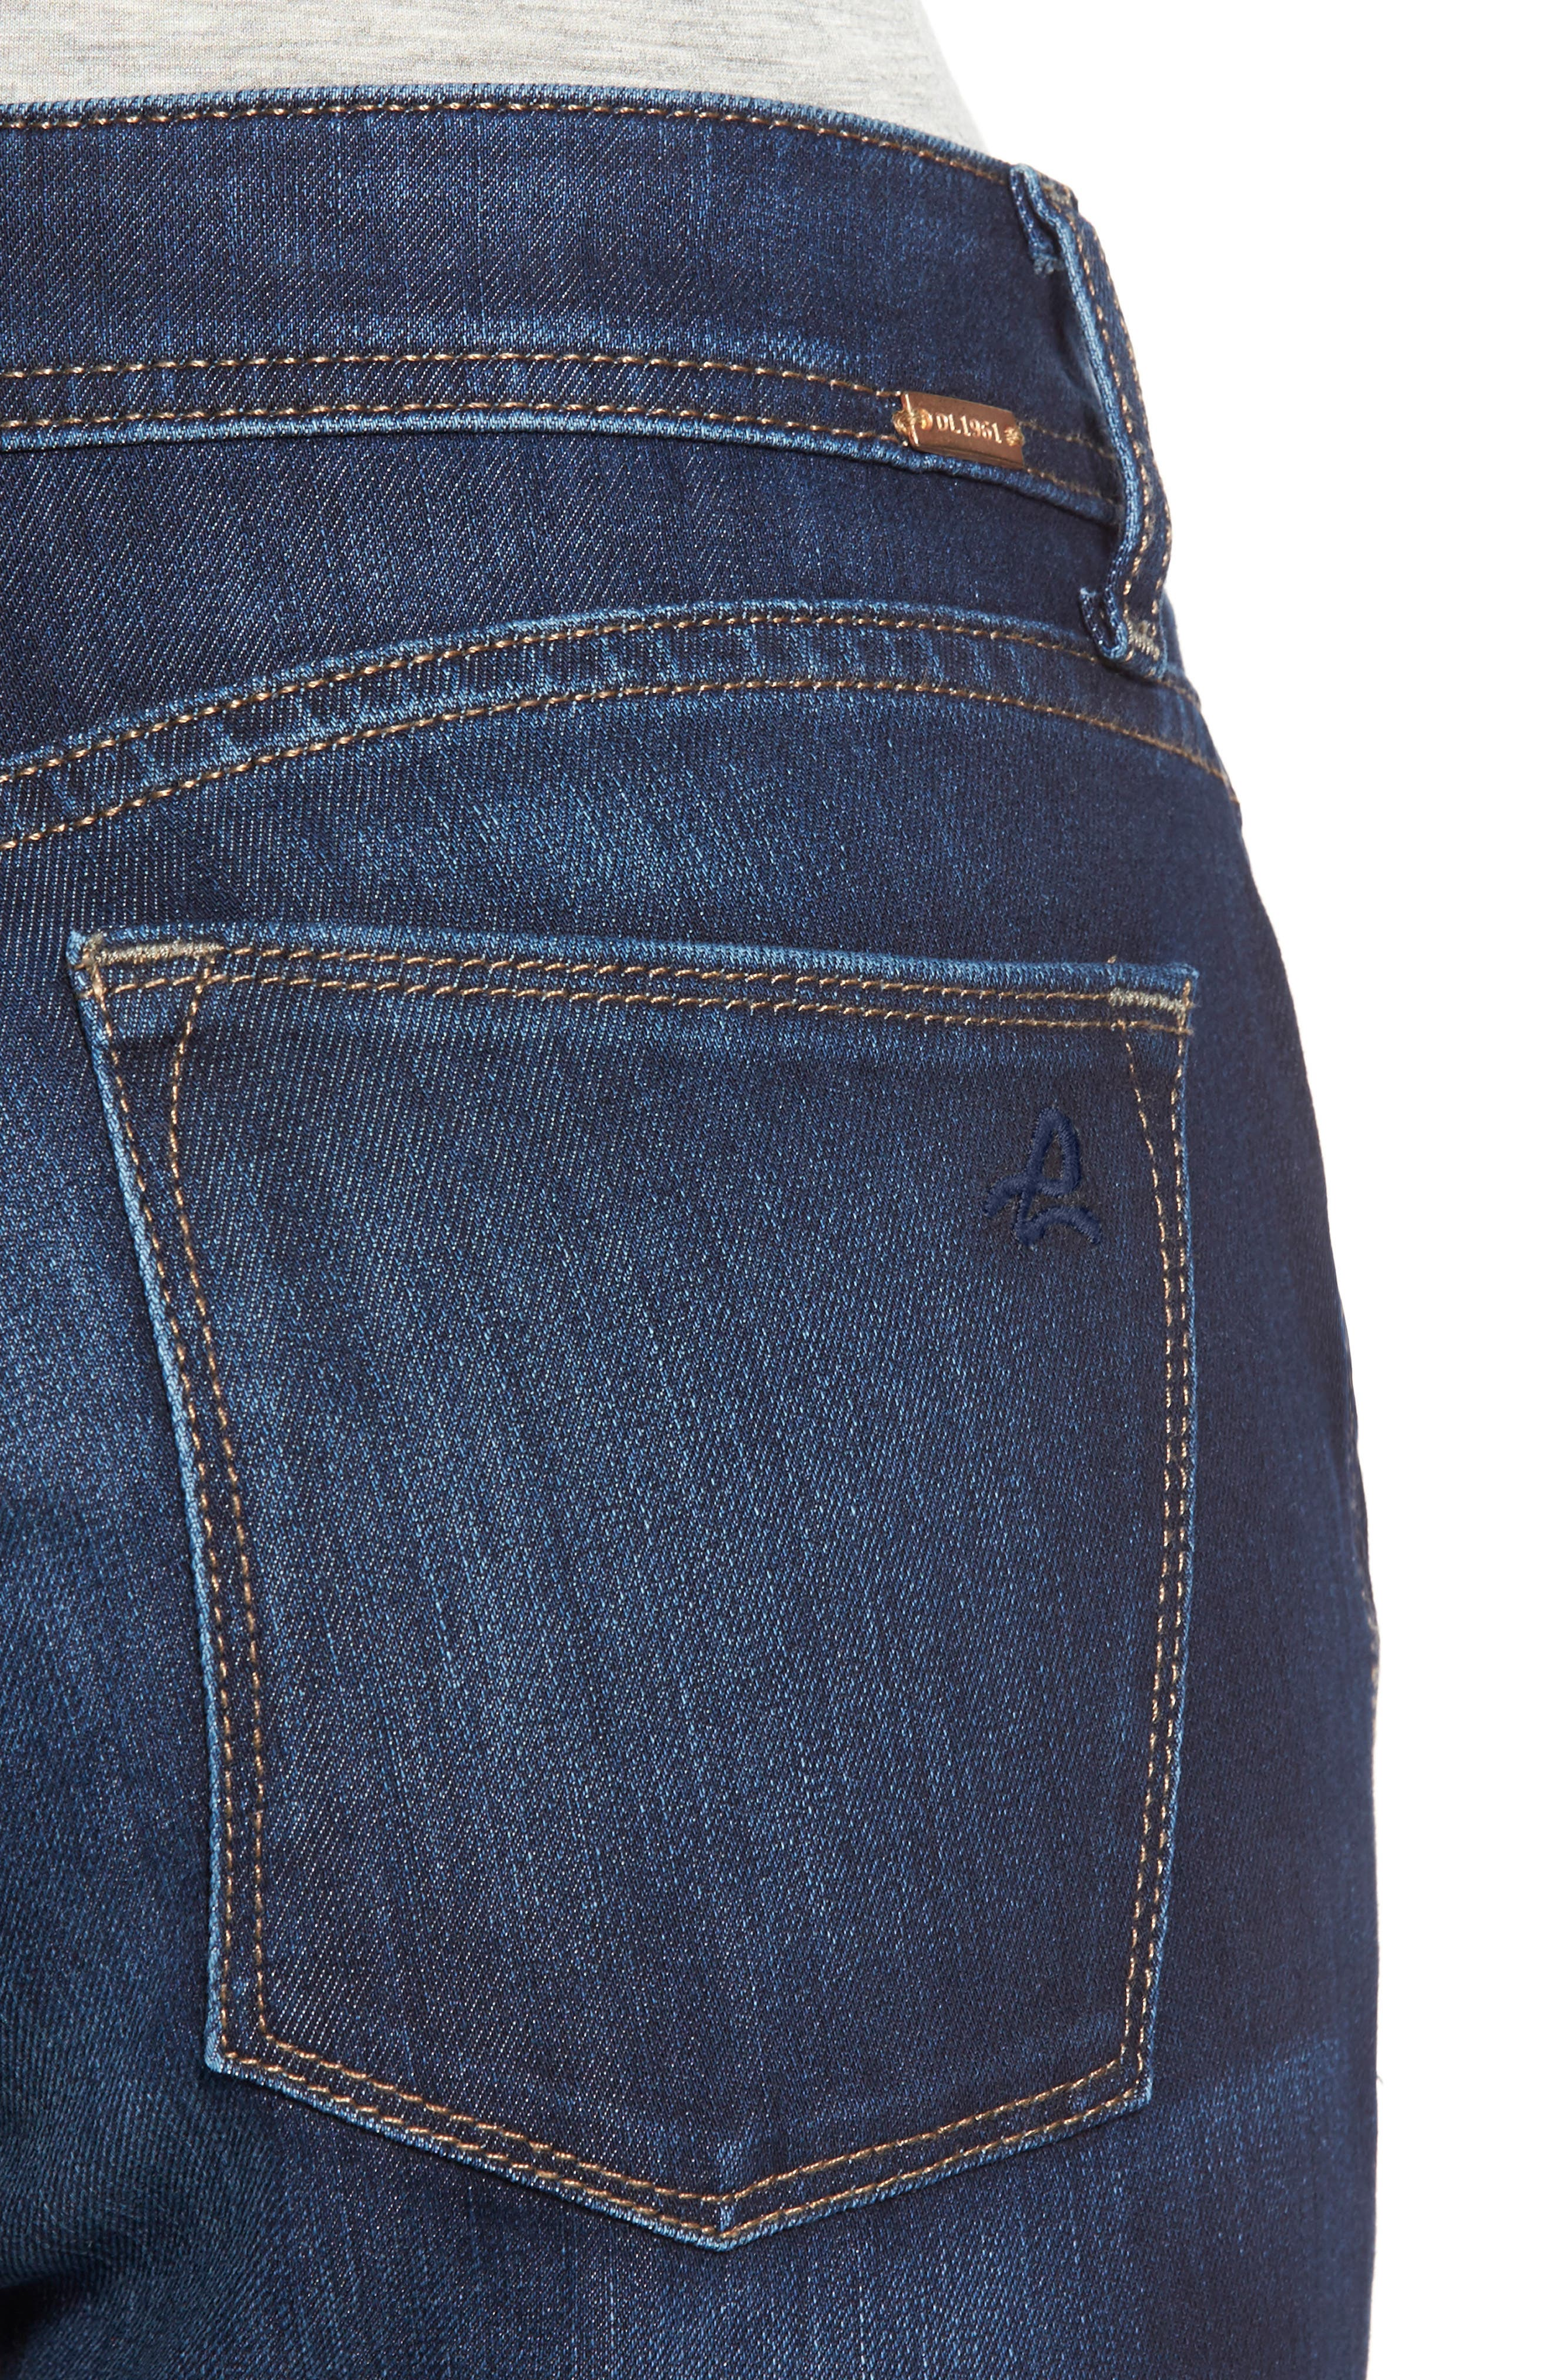 'Coco' Curvy Straight Jeans,                             Alternate thumbnail 4, color,                             SOLO